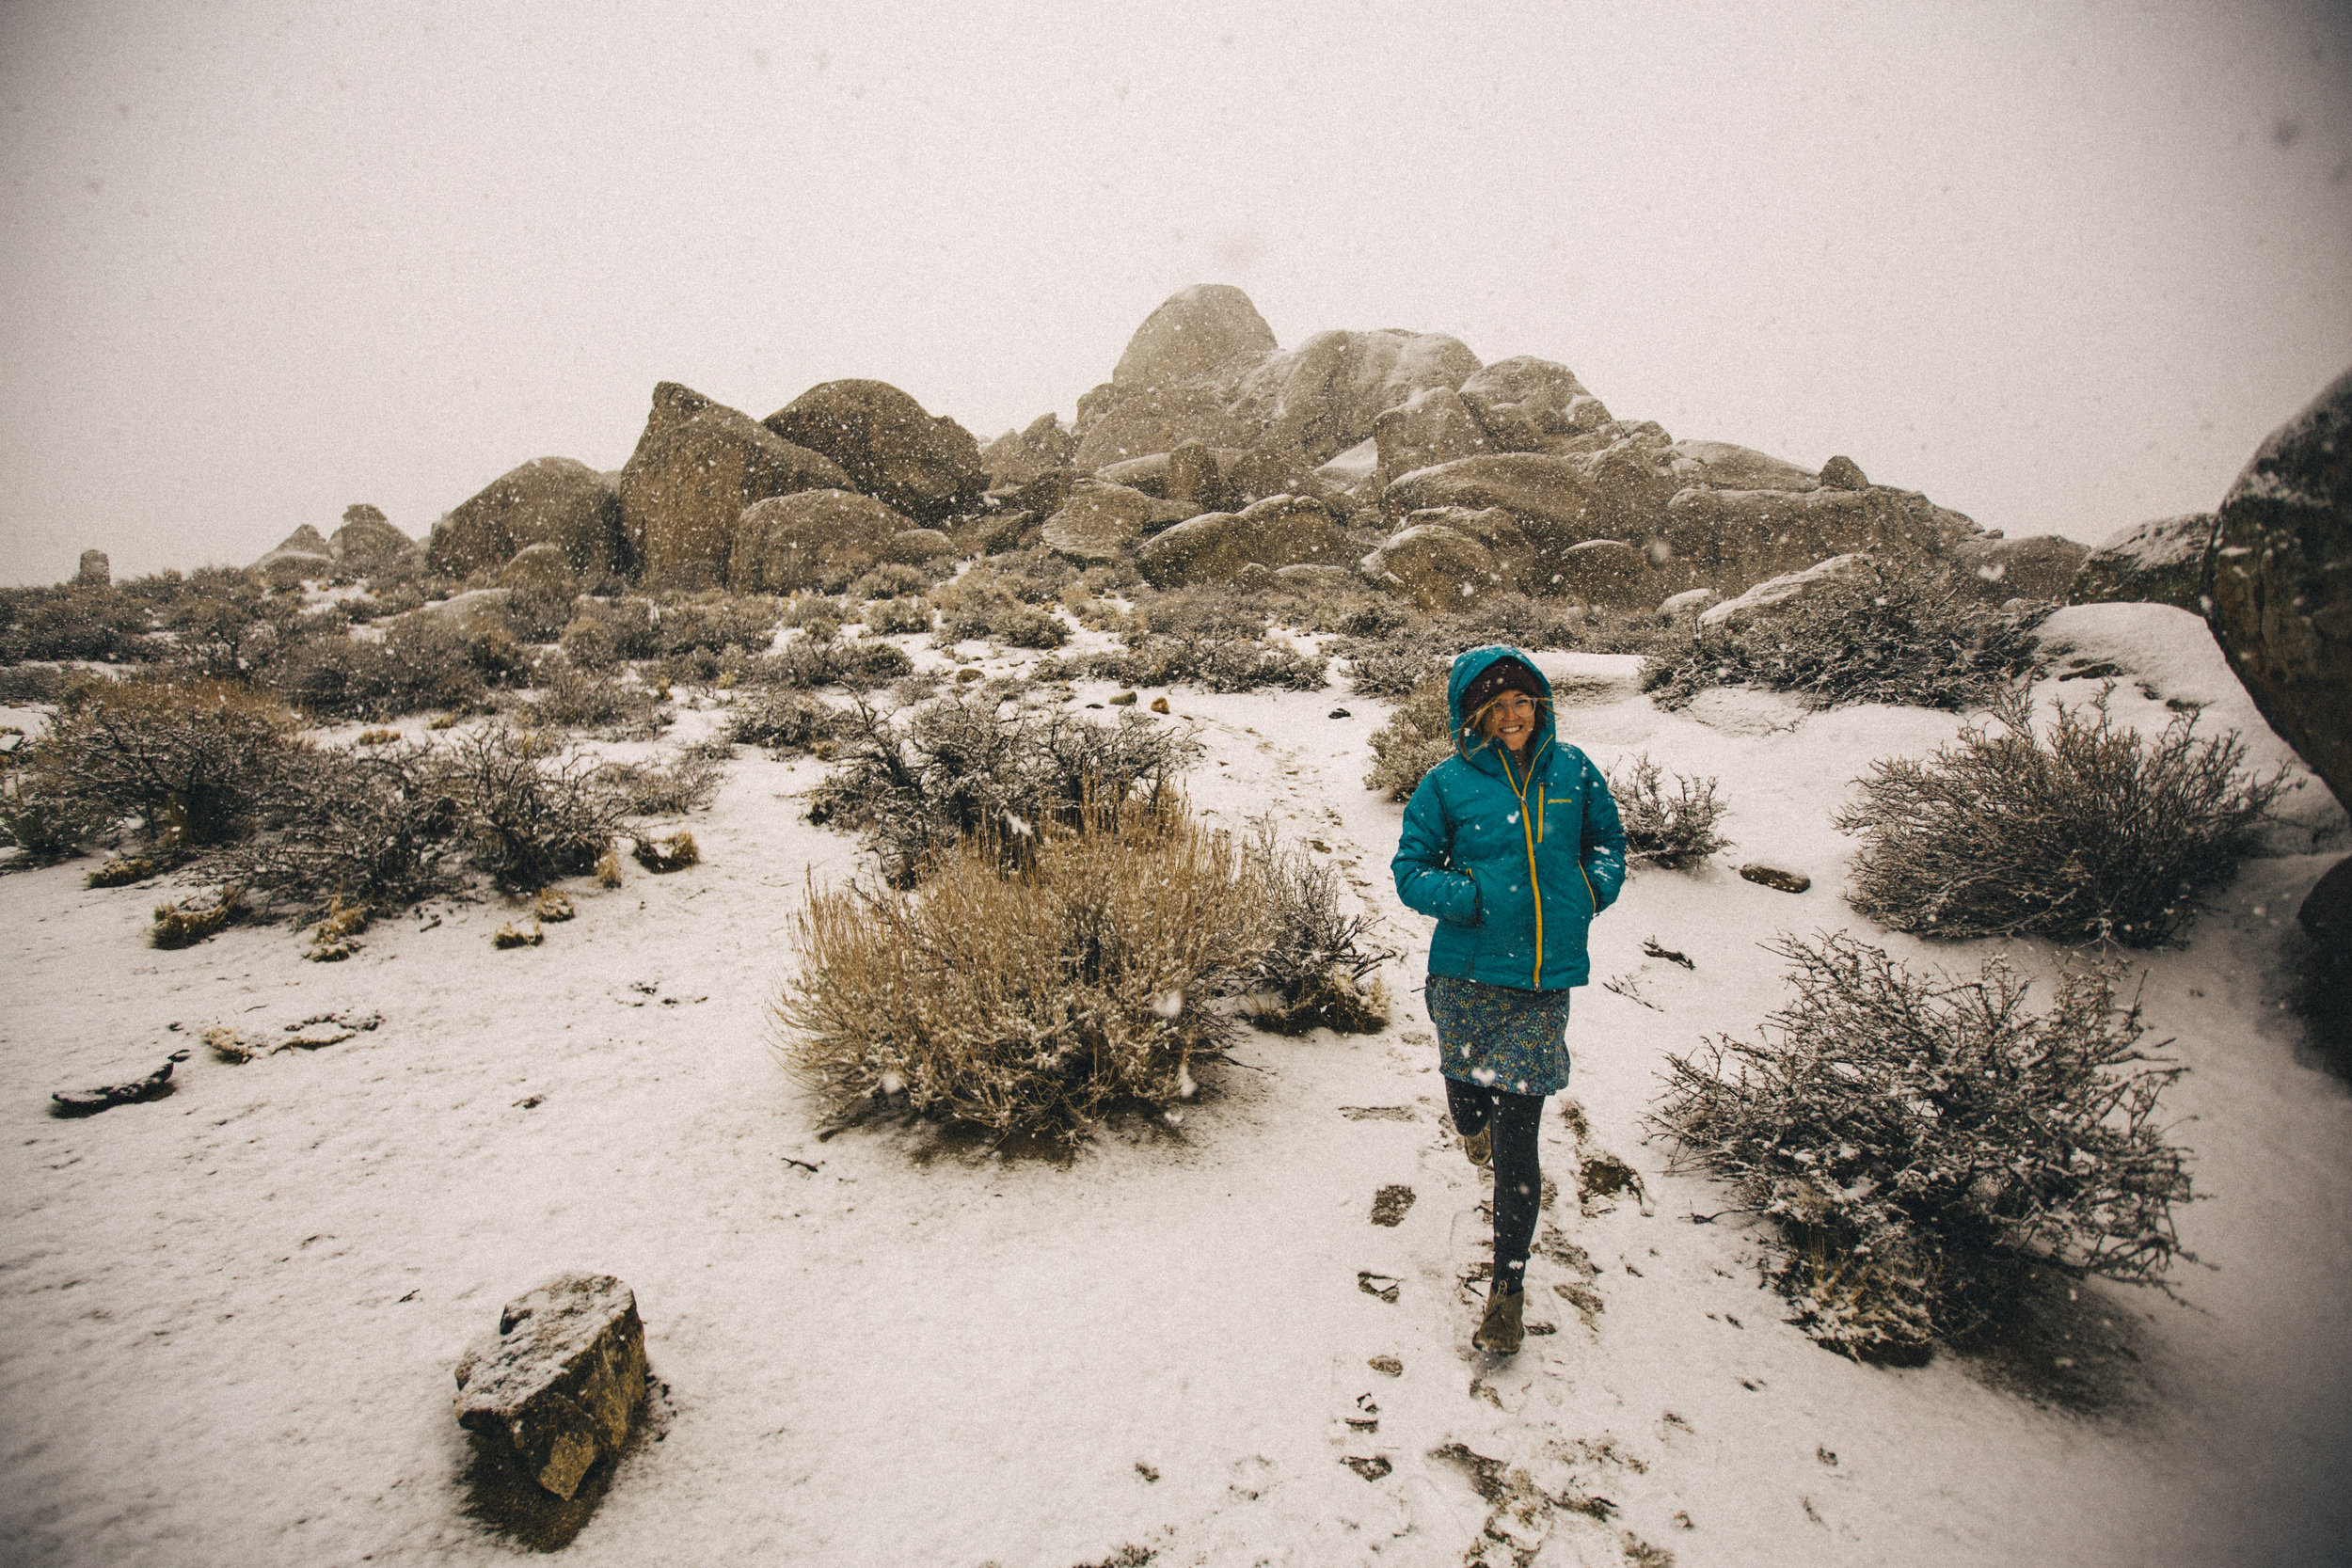 The Buttermilks, Bishop, CA (photo by  John Wesely )